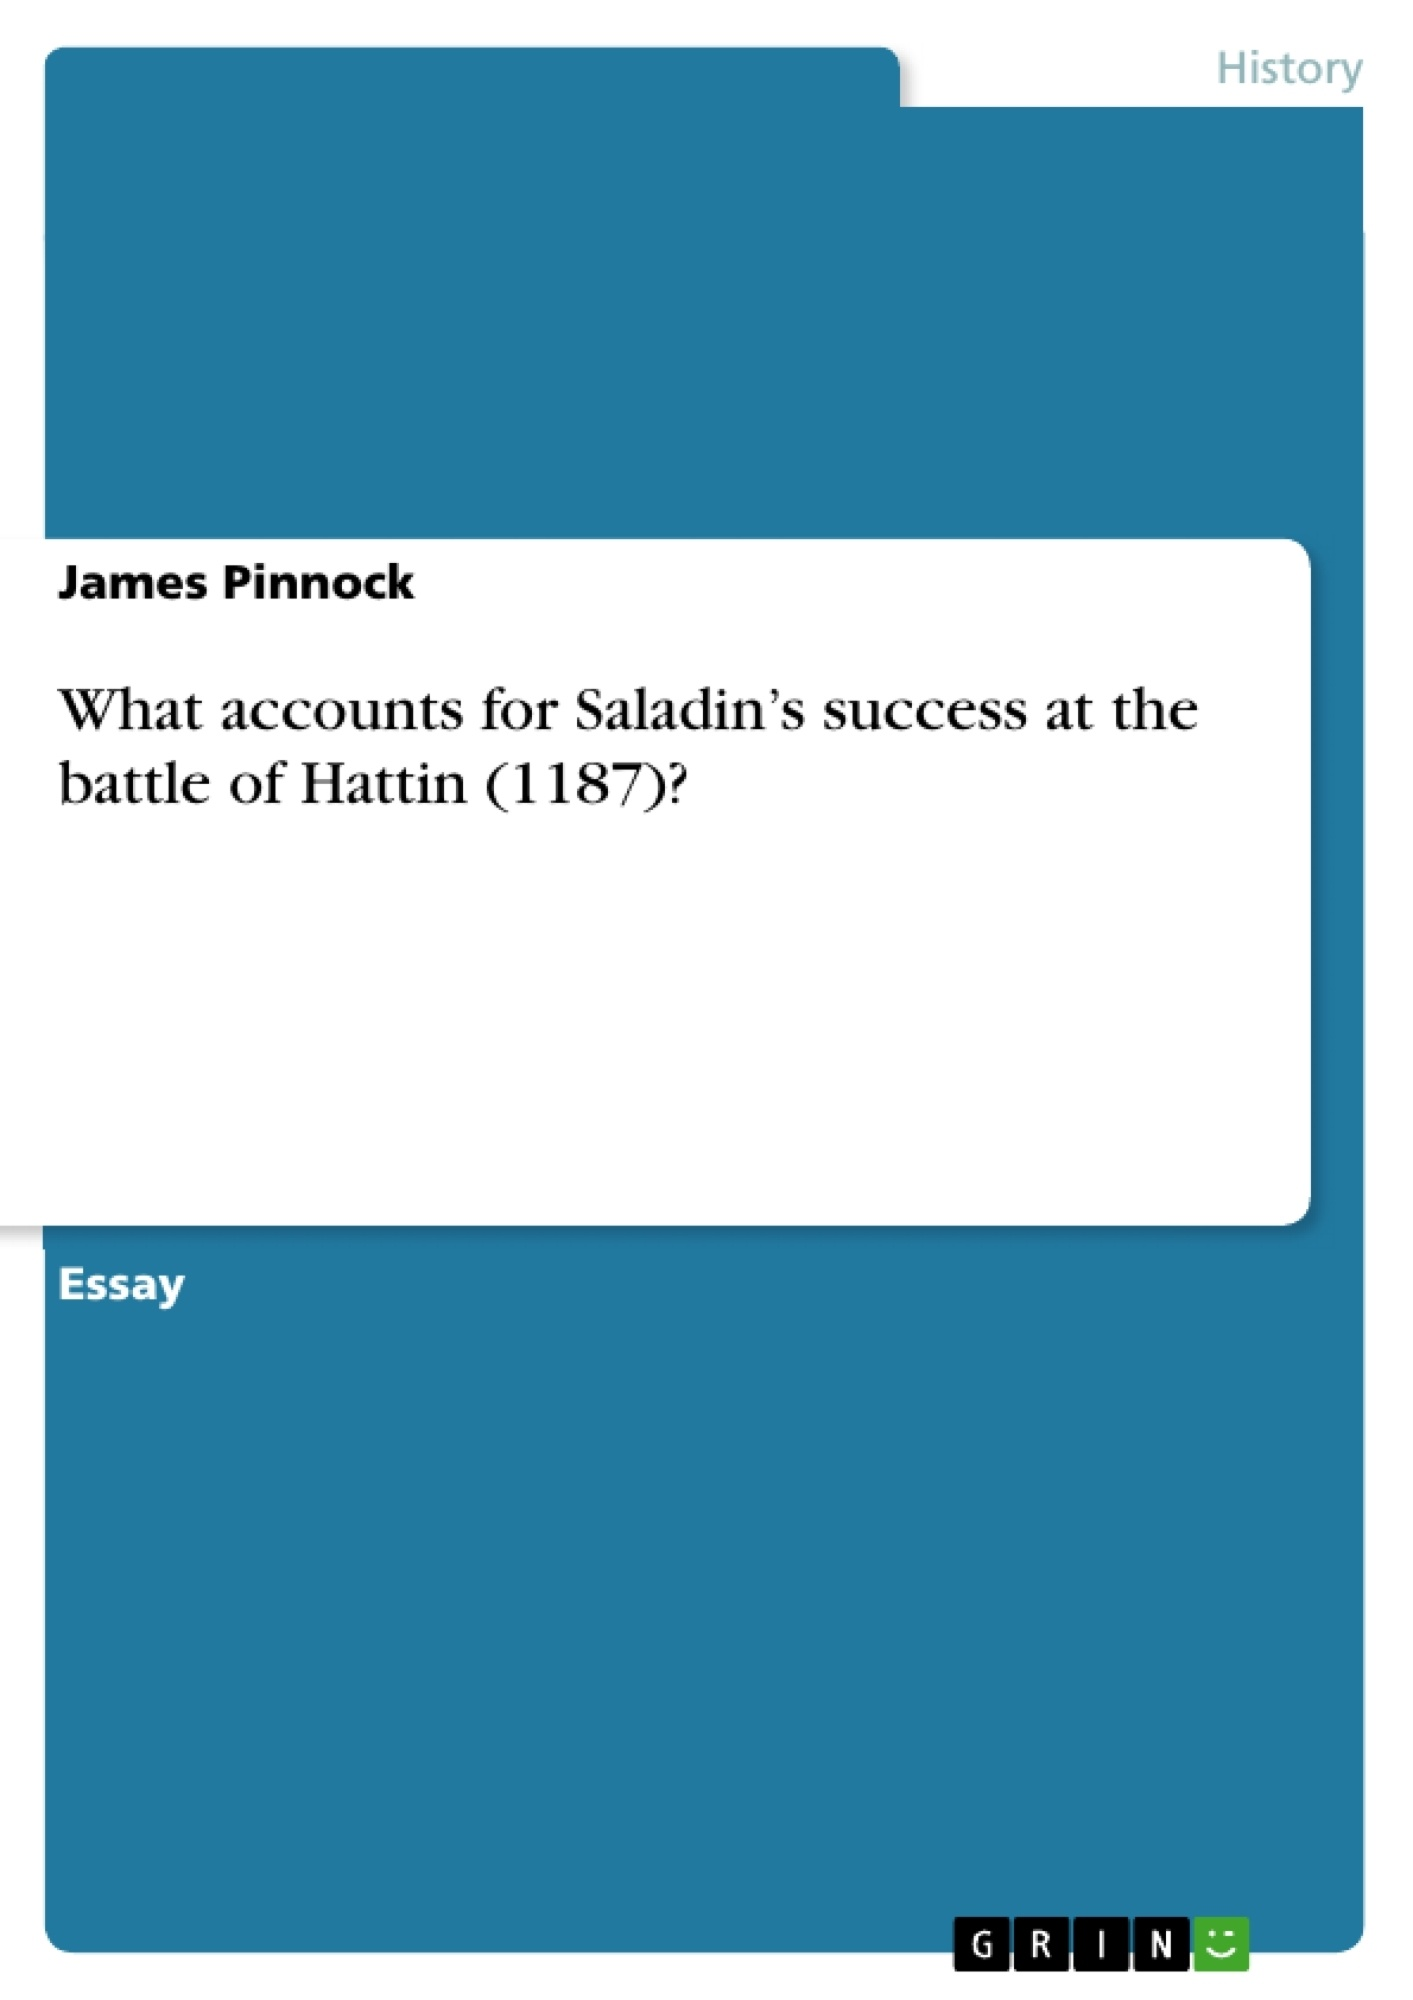 Title: What accounts for Saladin's success at the battle of Hattin (1187)?